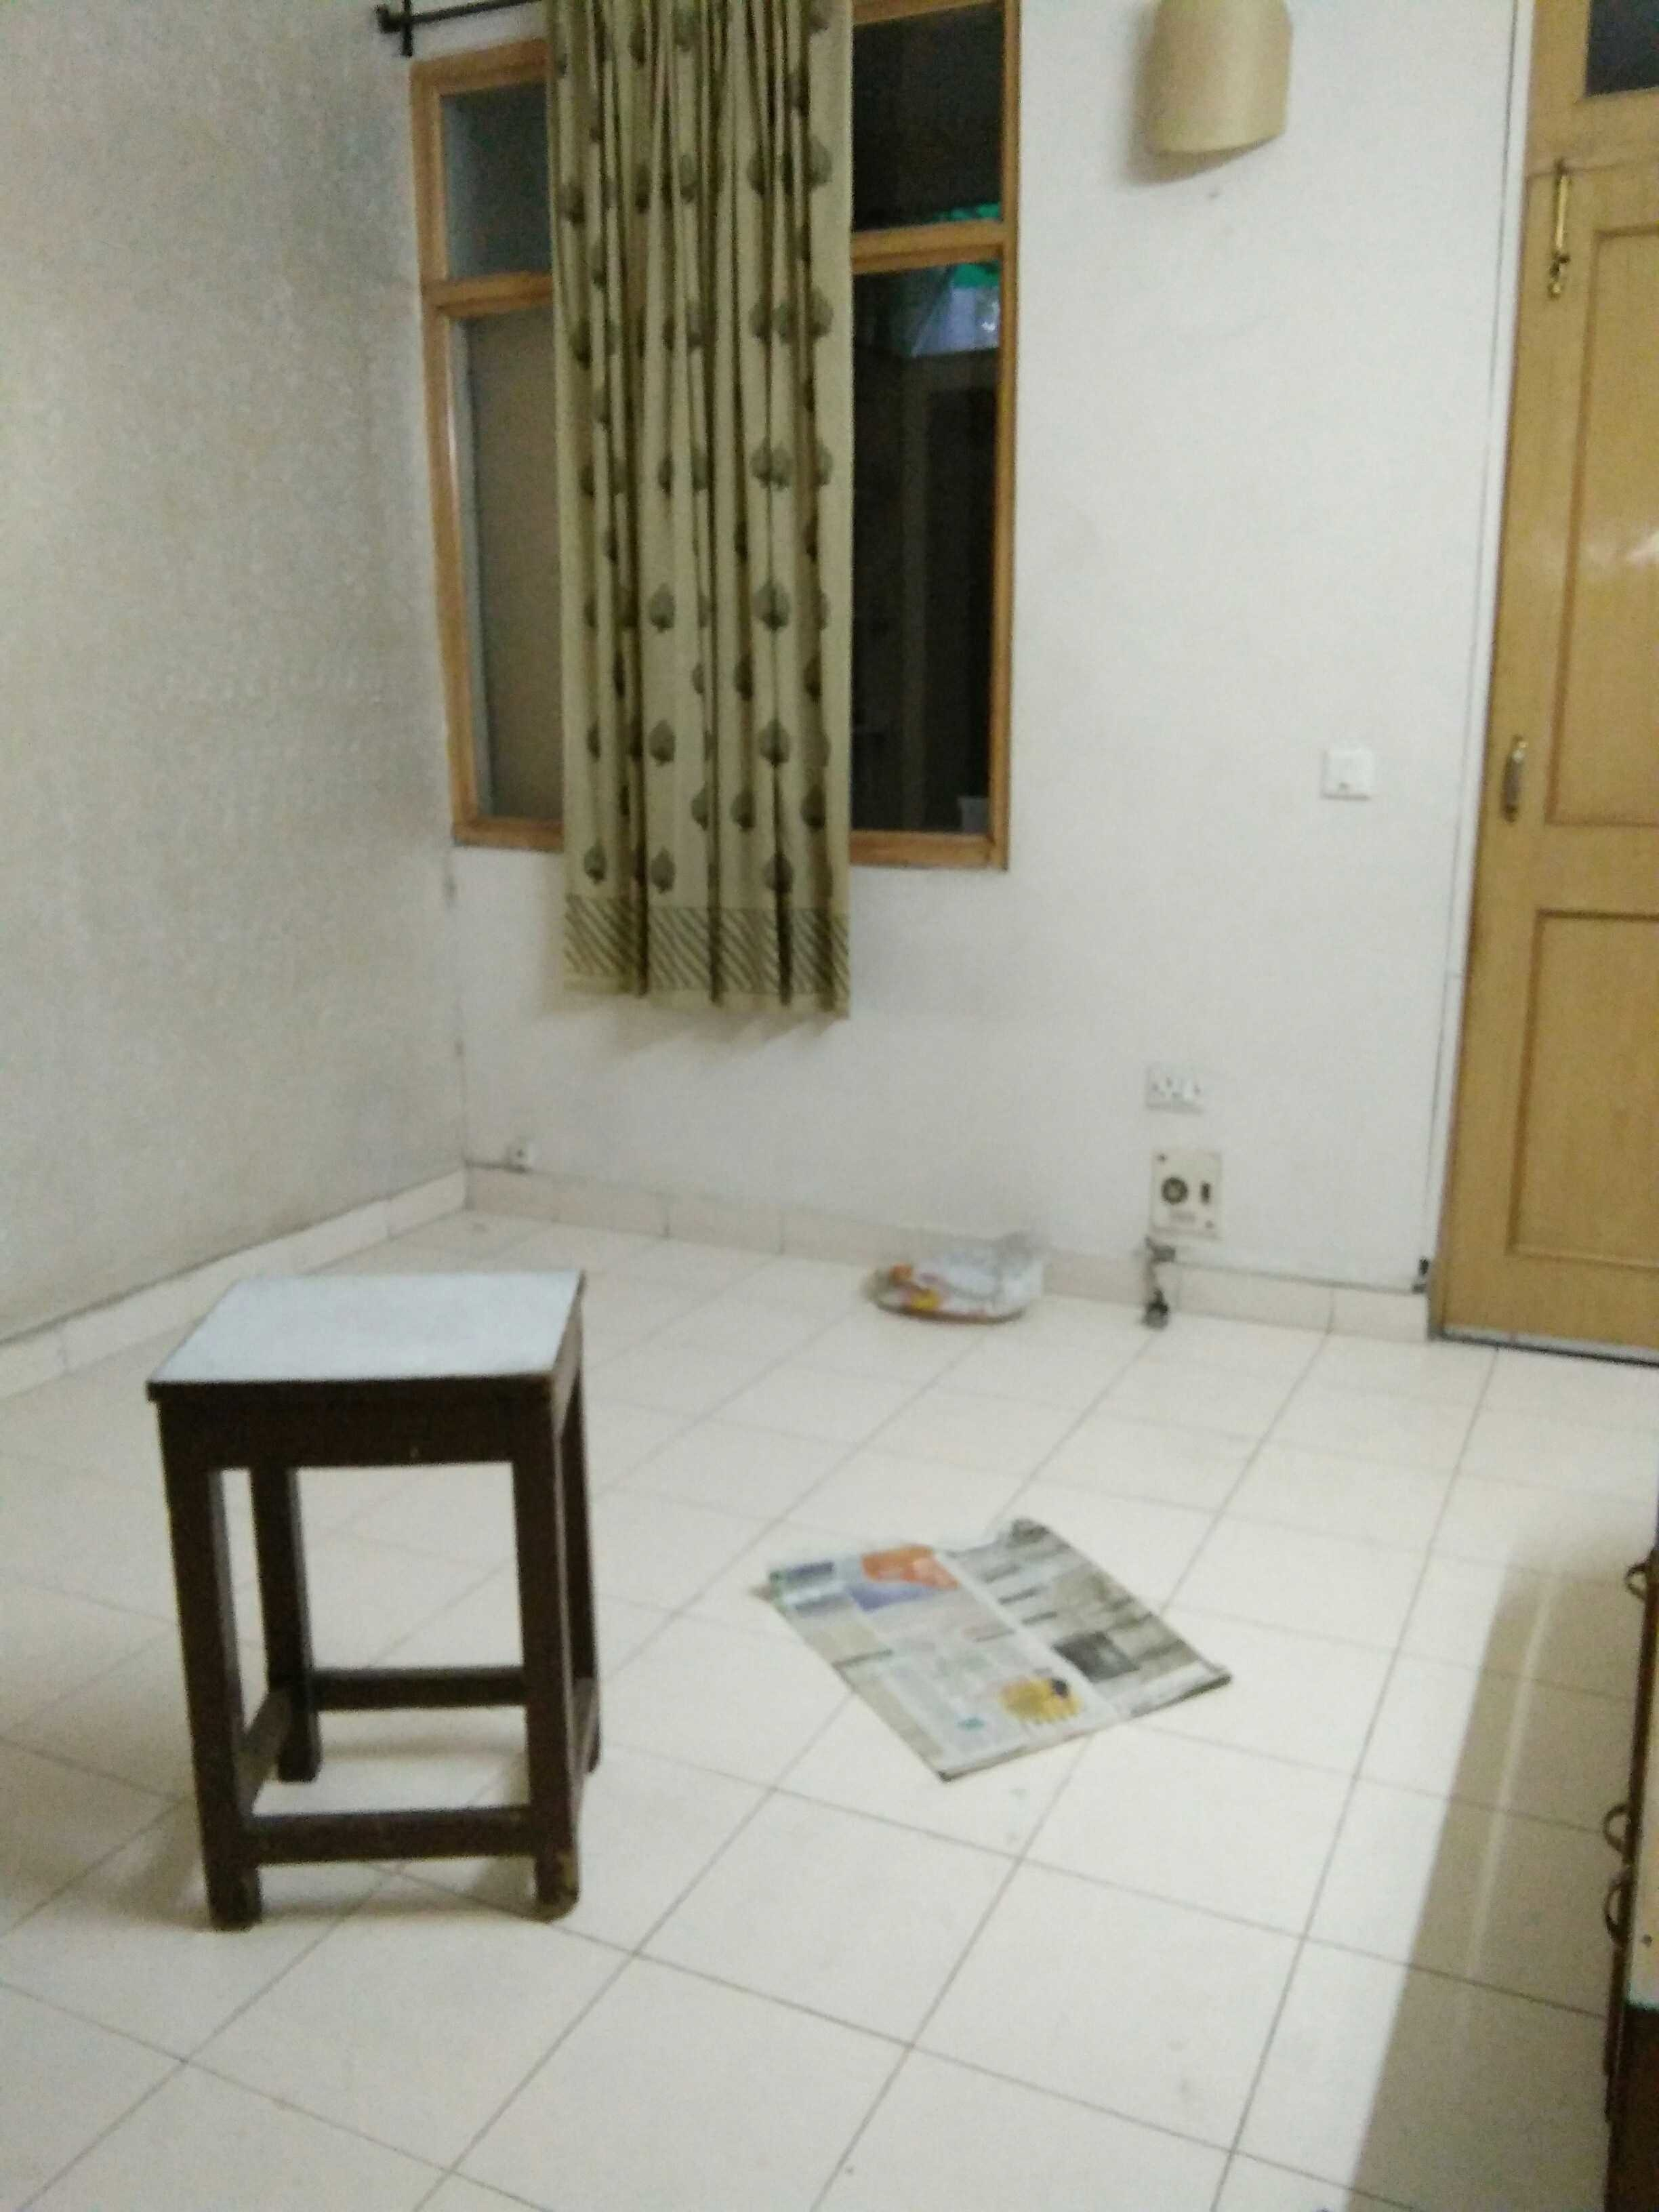 1000 sq ft 2BHK 2BHK+2T (1,000 sq ft) + Pooja Room Property By Jha Associates In Project, i p extension patparganj